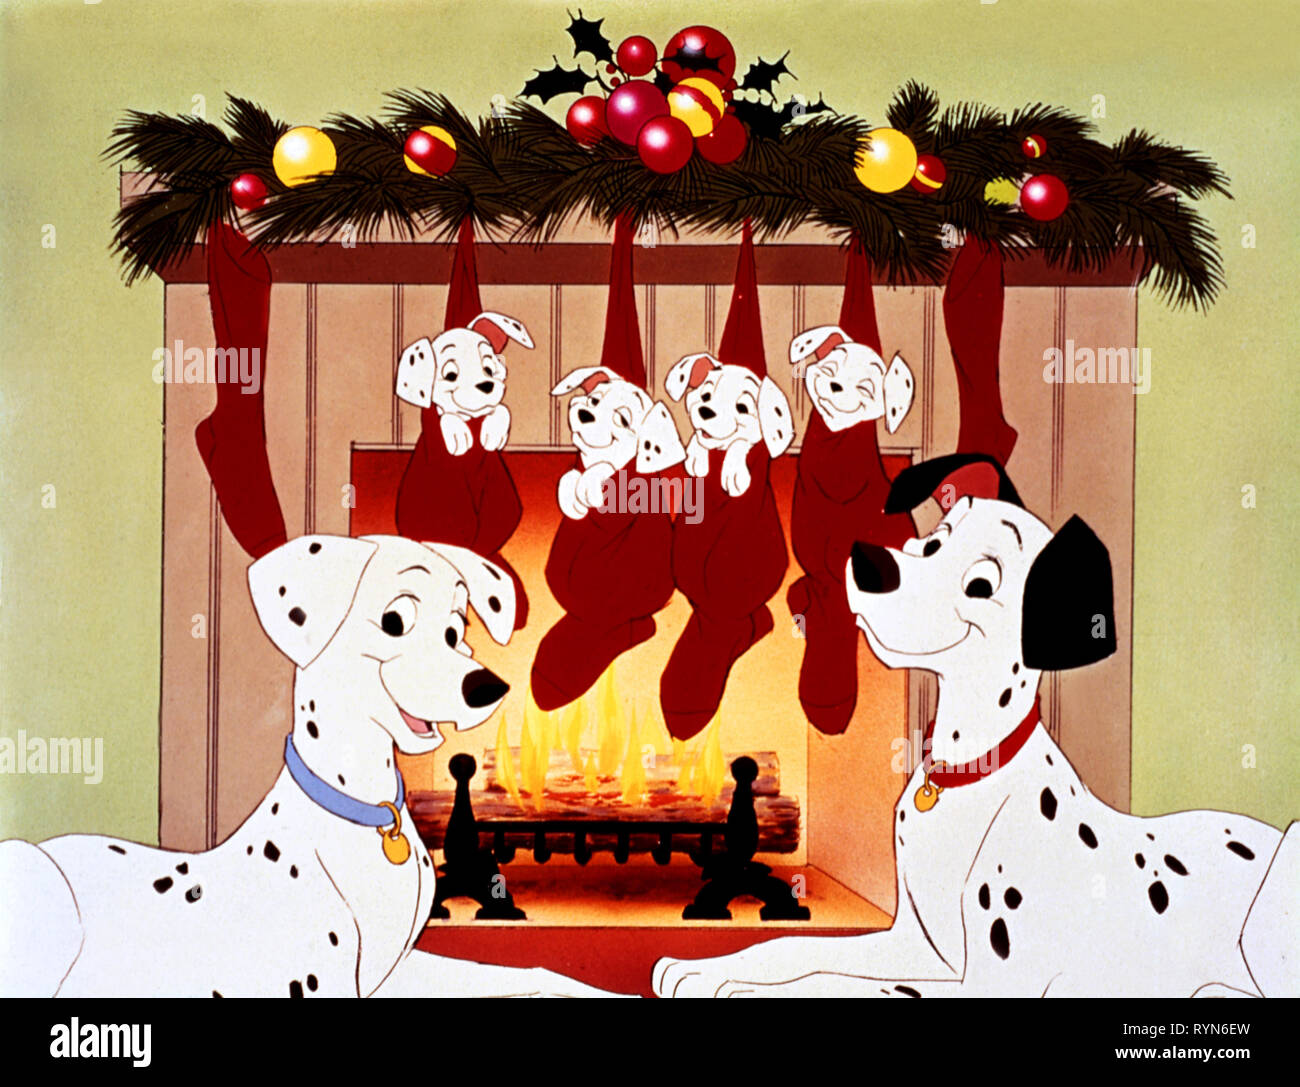 One Hundred And One Dalmatians High Resolution Stock Photography And Images Alamy